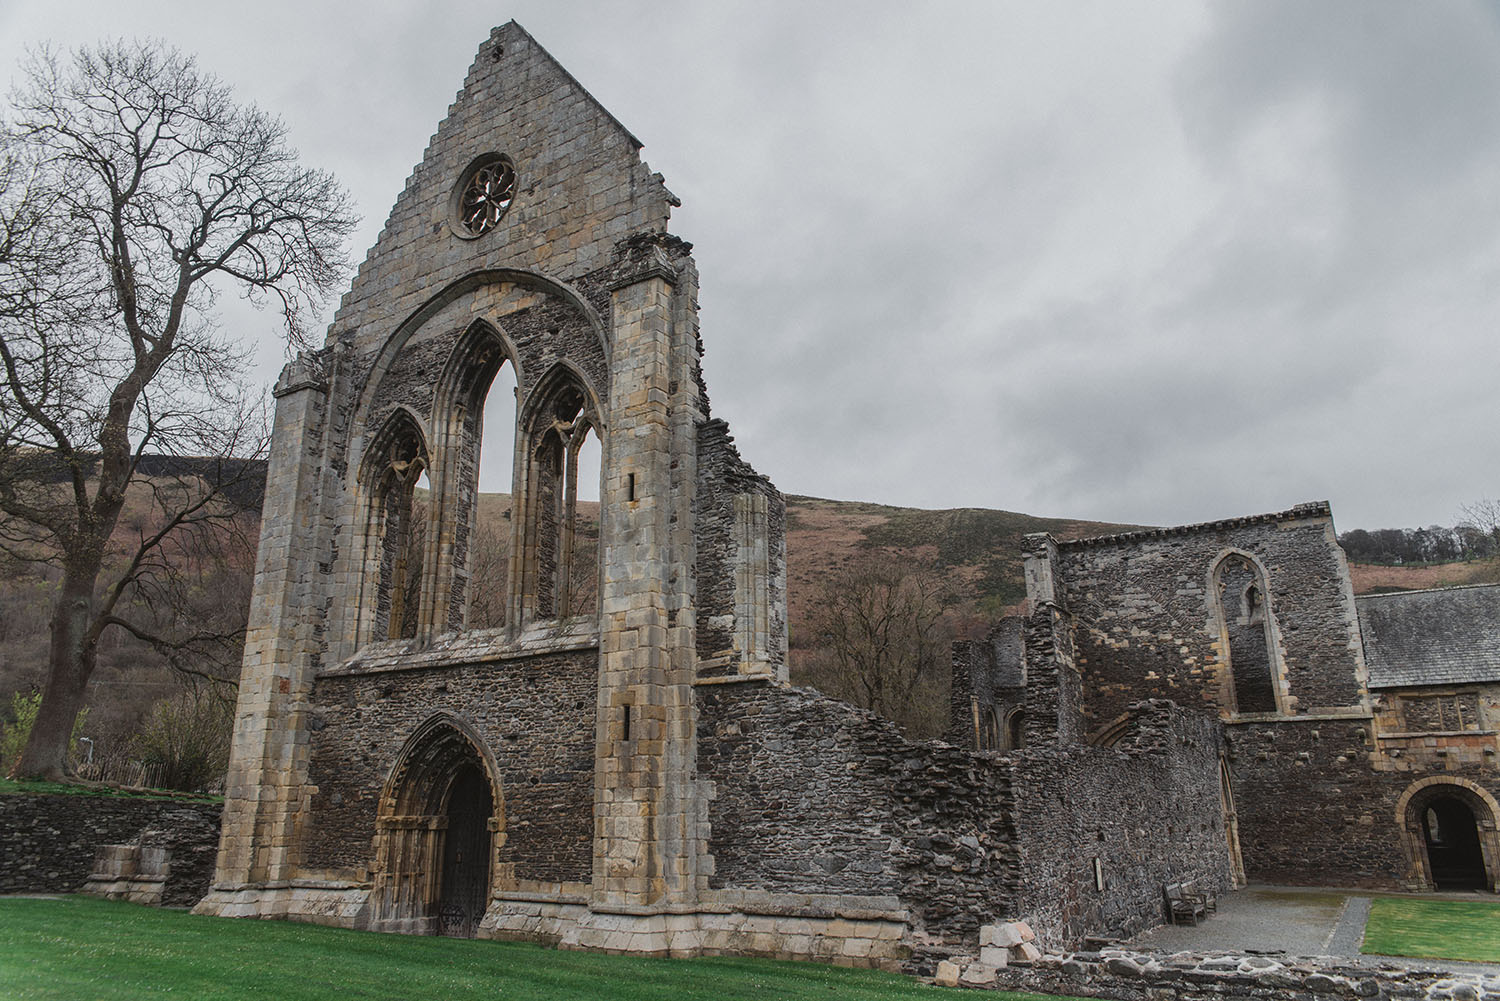 Valle Crucis Abbey in Wales